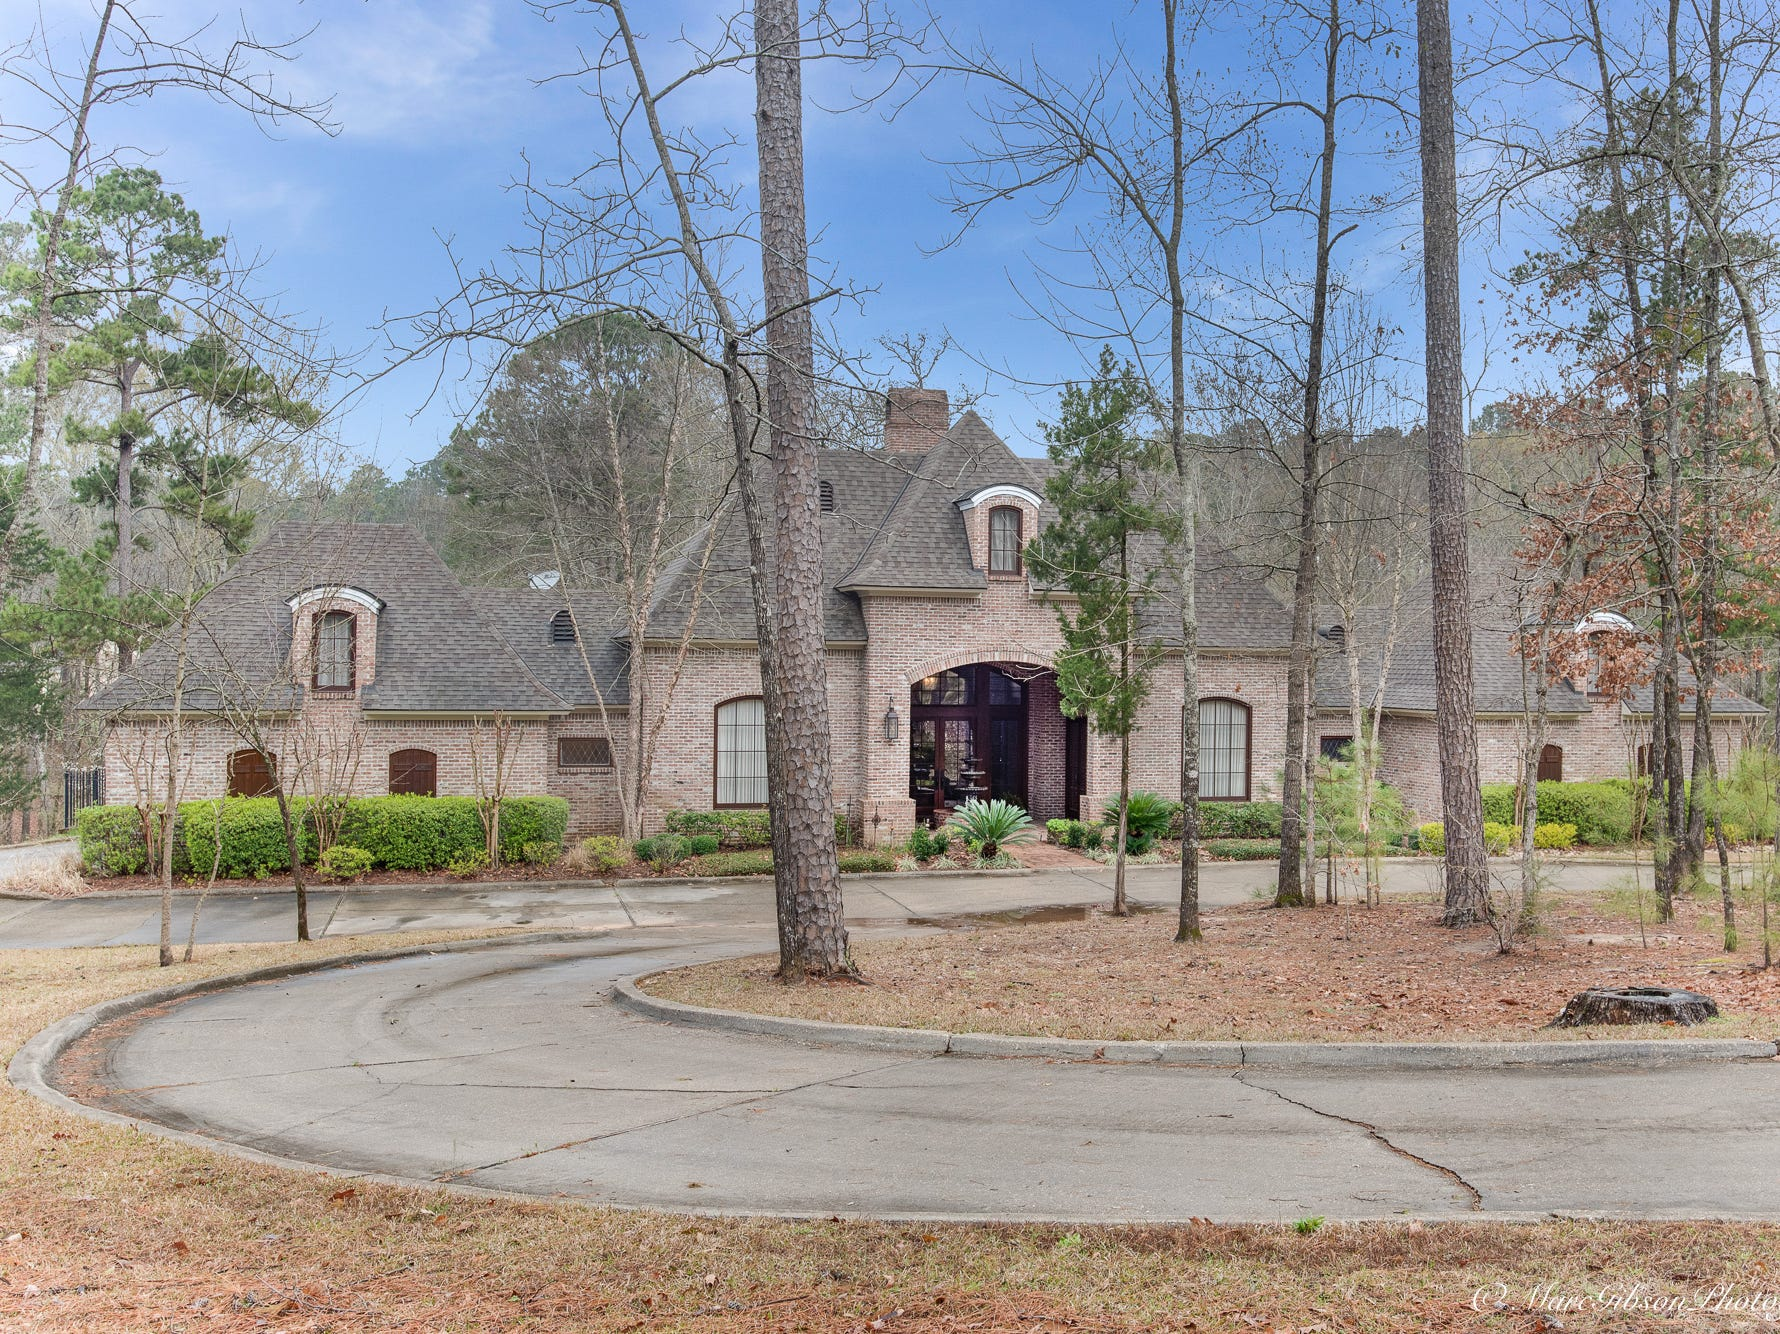 1026 Ellerbe Court, Shreveport  Price: $1,195,000  Details: 4 bedrooms, 5 baths, 5,834 square feet  Features: South Shreveport living on 4.2 acres with arched brick accent walls and wooden beams, iron work, chef's dream kitchen with Wolf gas cooktop and built-in refrigerator, living room with 24 ft. ceilings, luxurious master suite with fireplace overlooking grounds, lower level with mini kitchen/office/den.  Contact: Lynn Roos, 455-6004